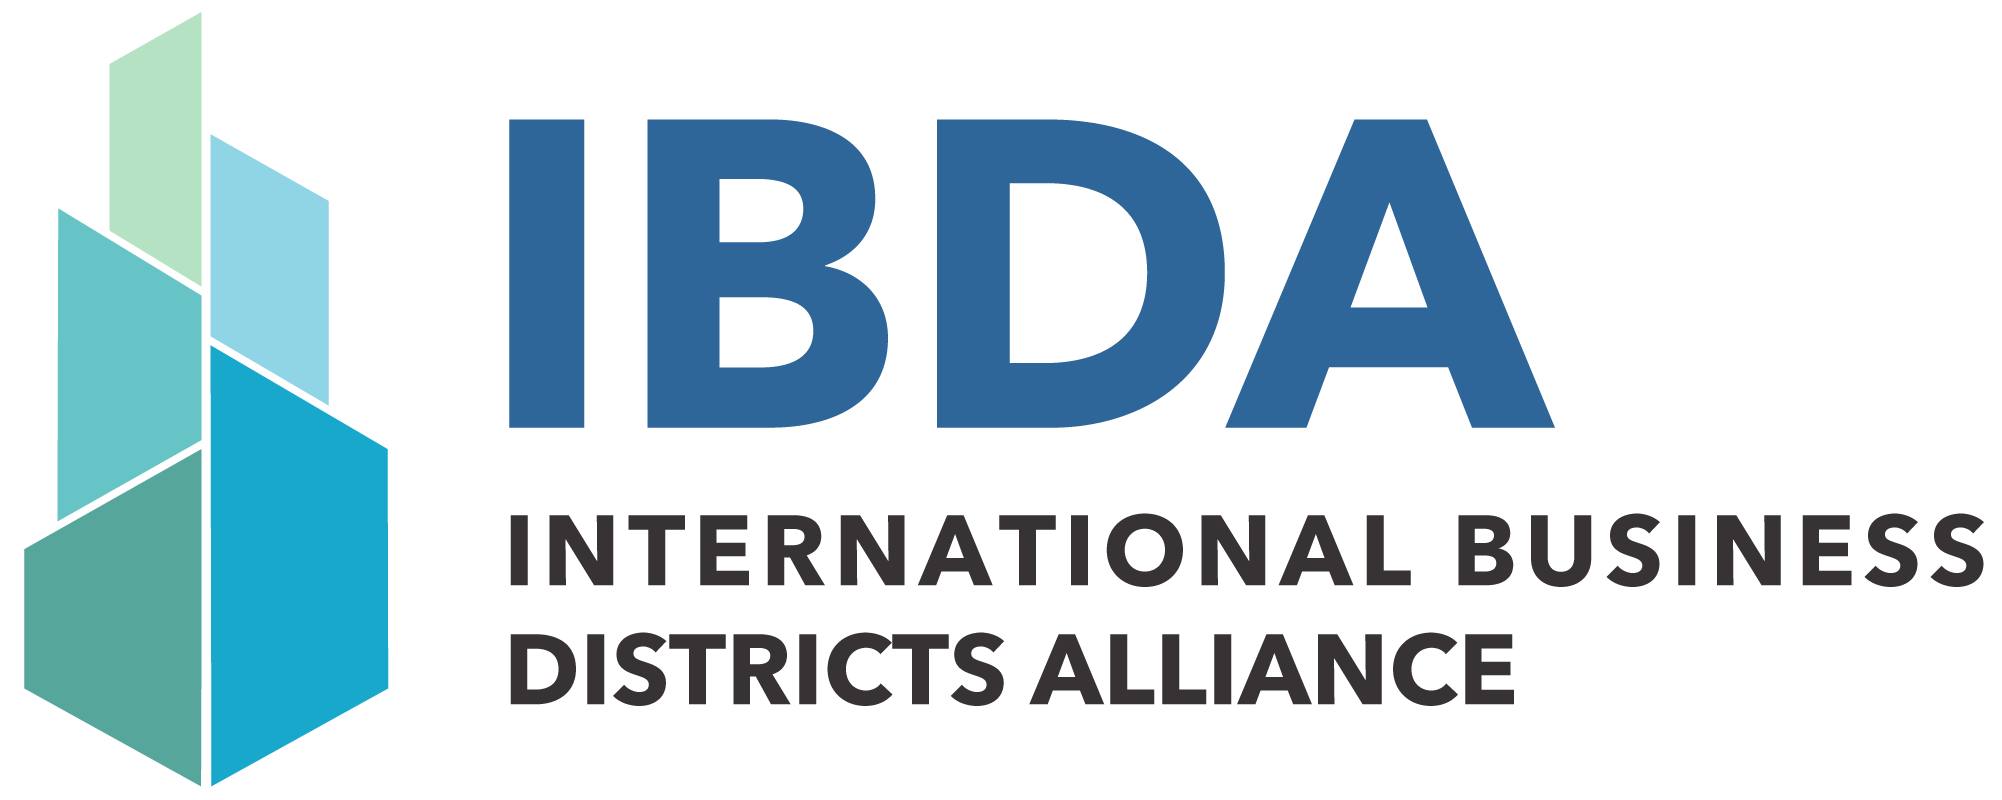 IBDA - International Business District Alliance